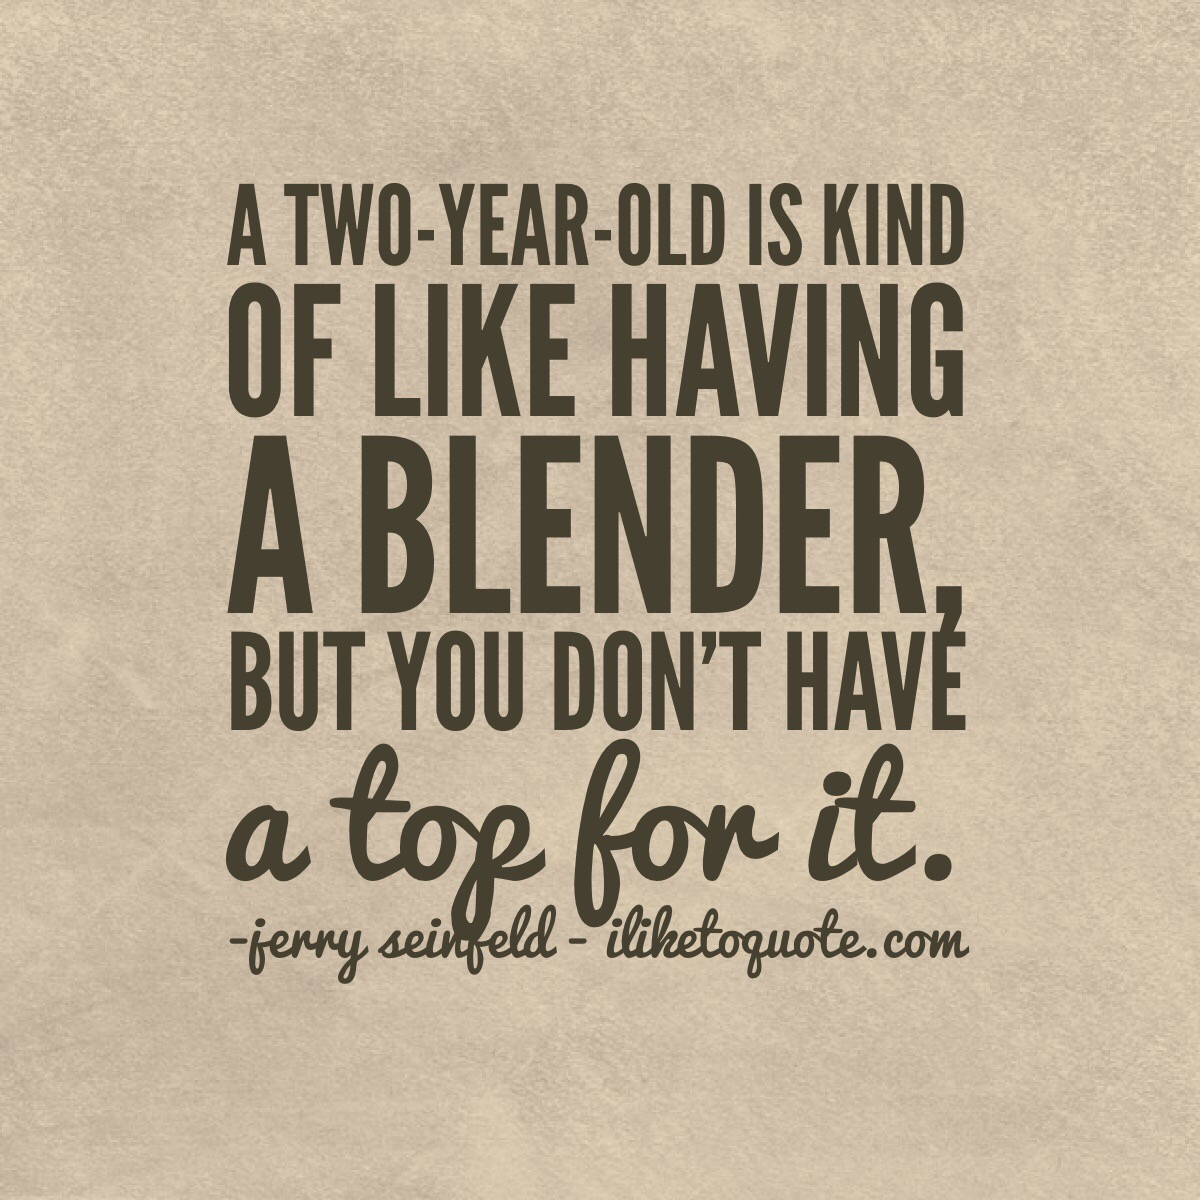 A two-year-old is kind of like having a blender, but you don't have a top for it.